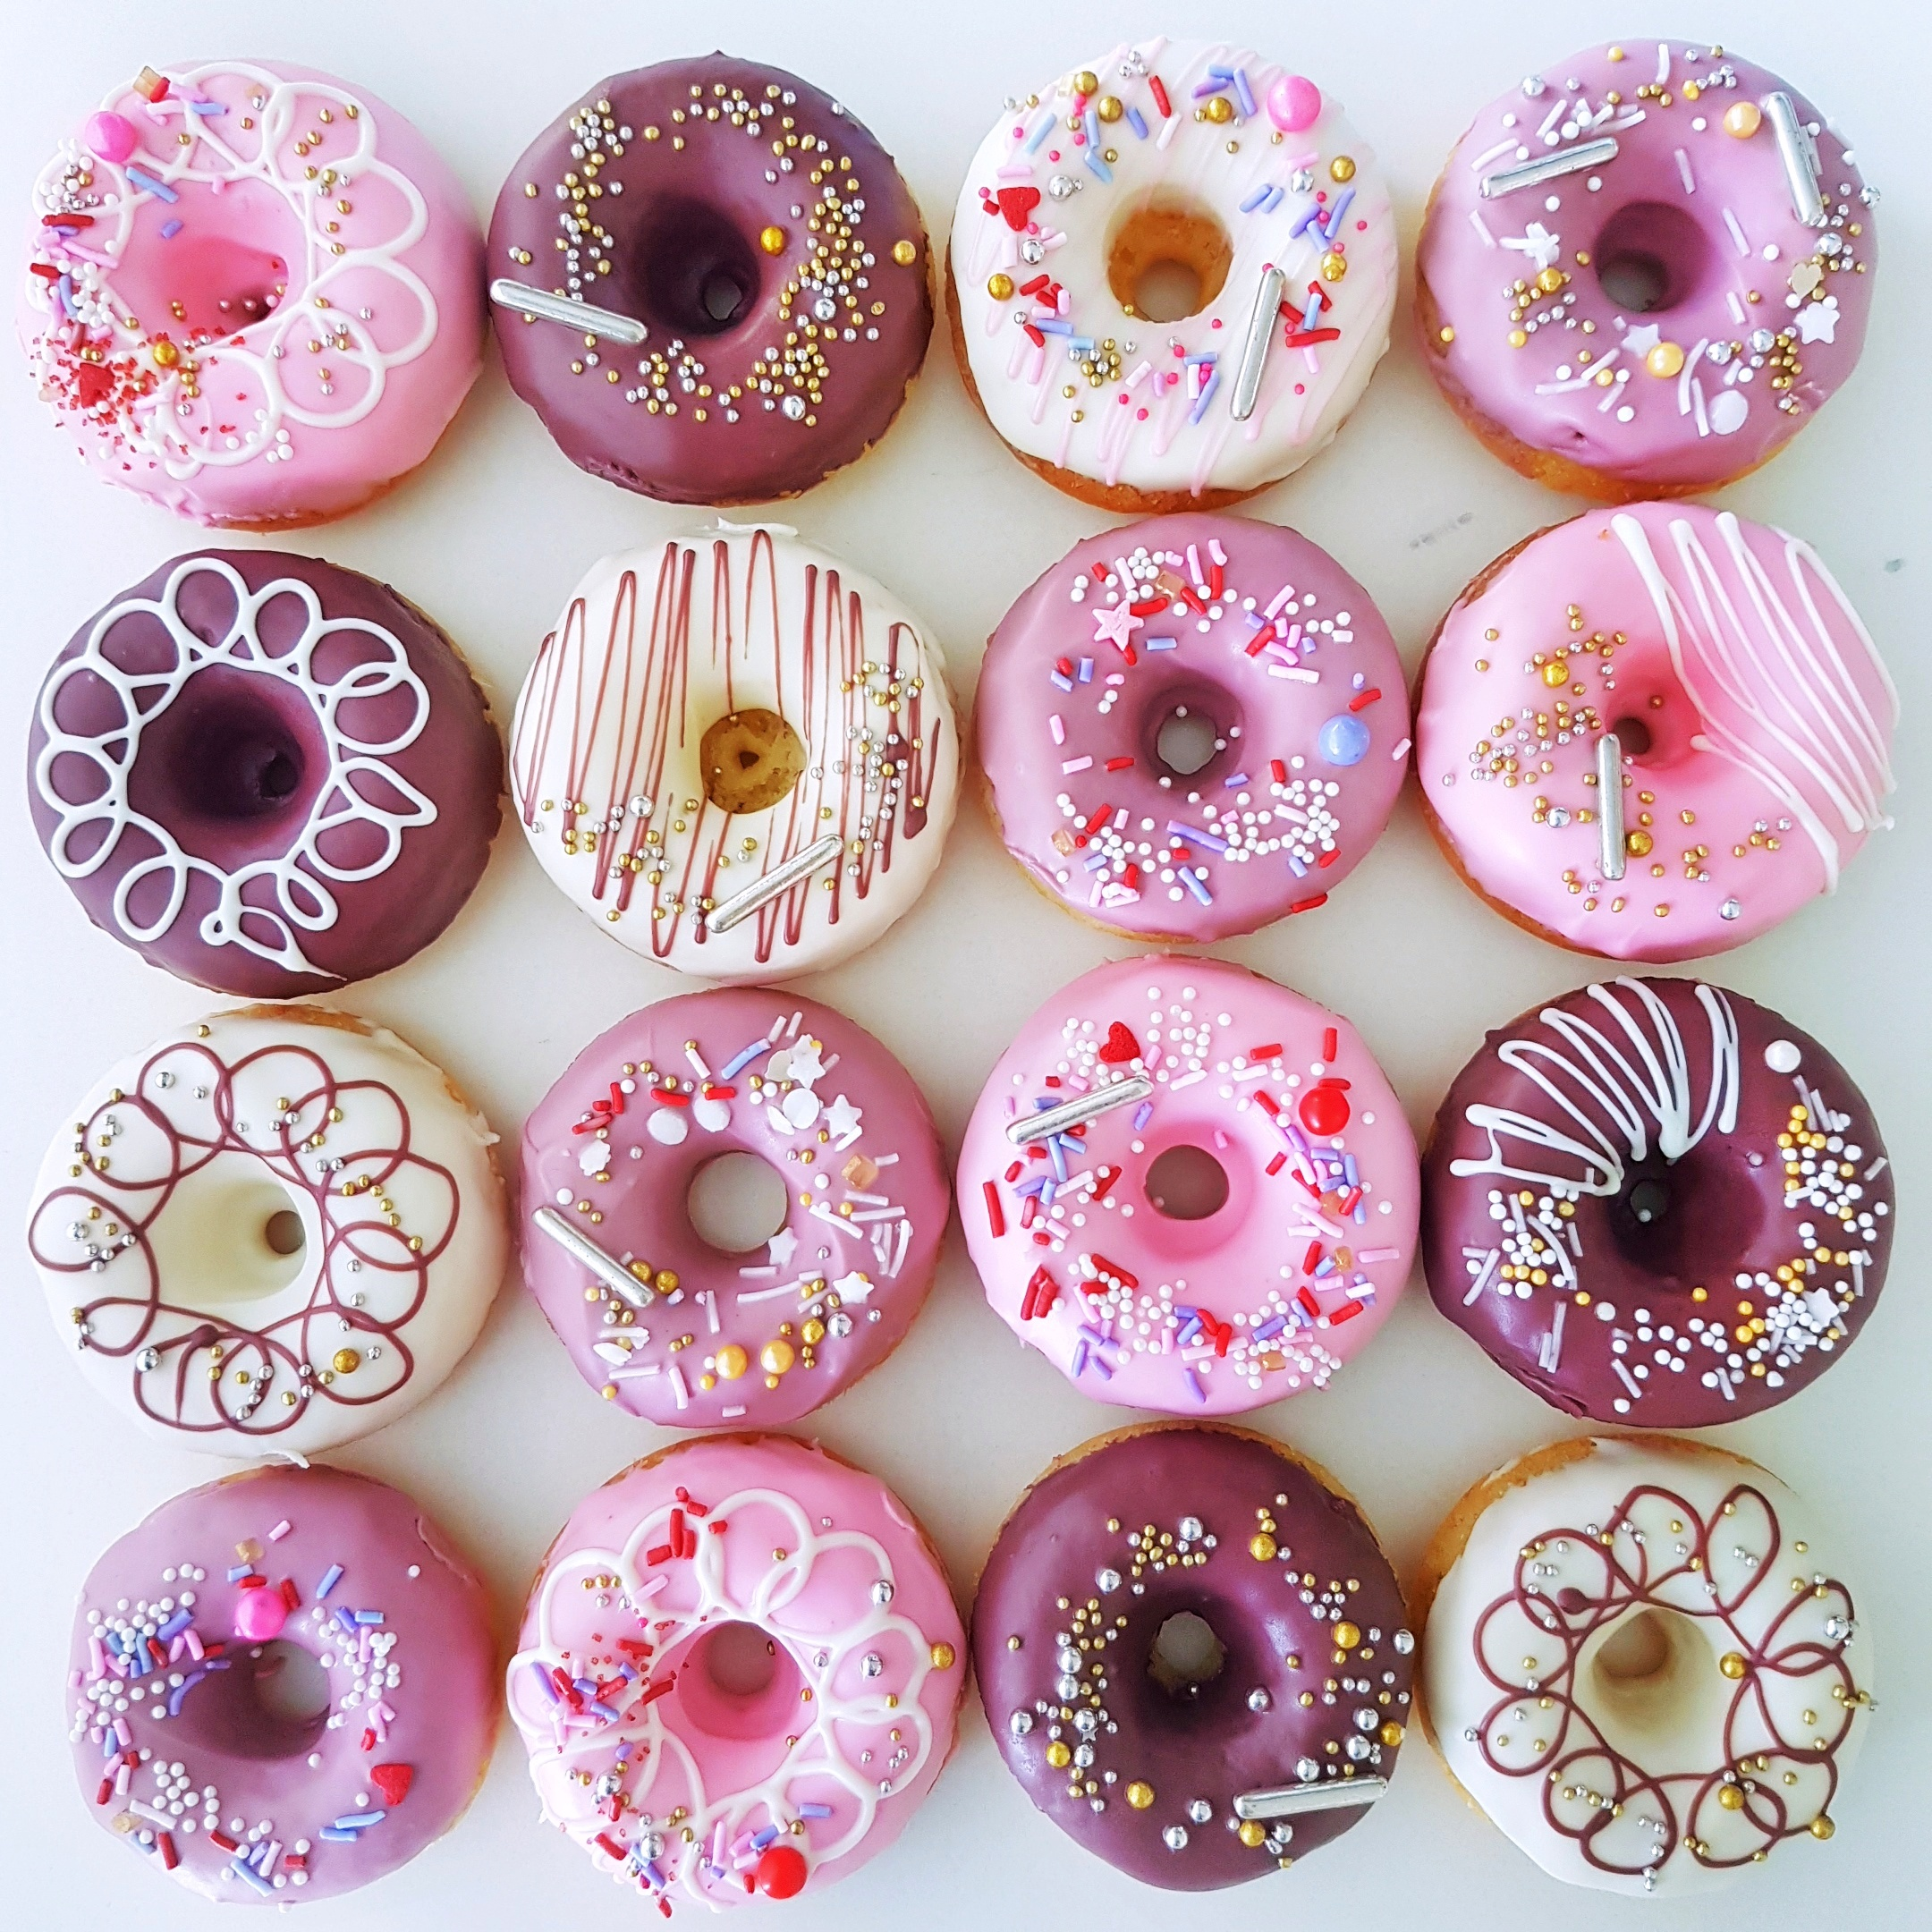 Set of 16 pink donuts by The Baking Experiment